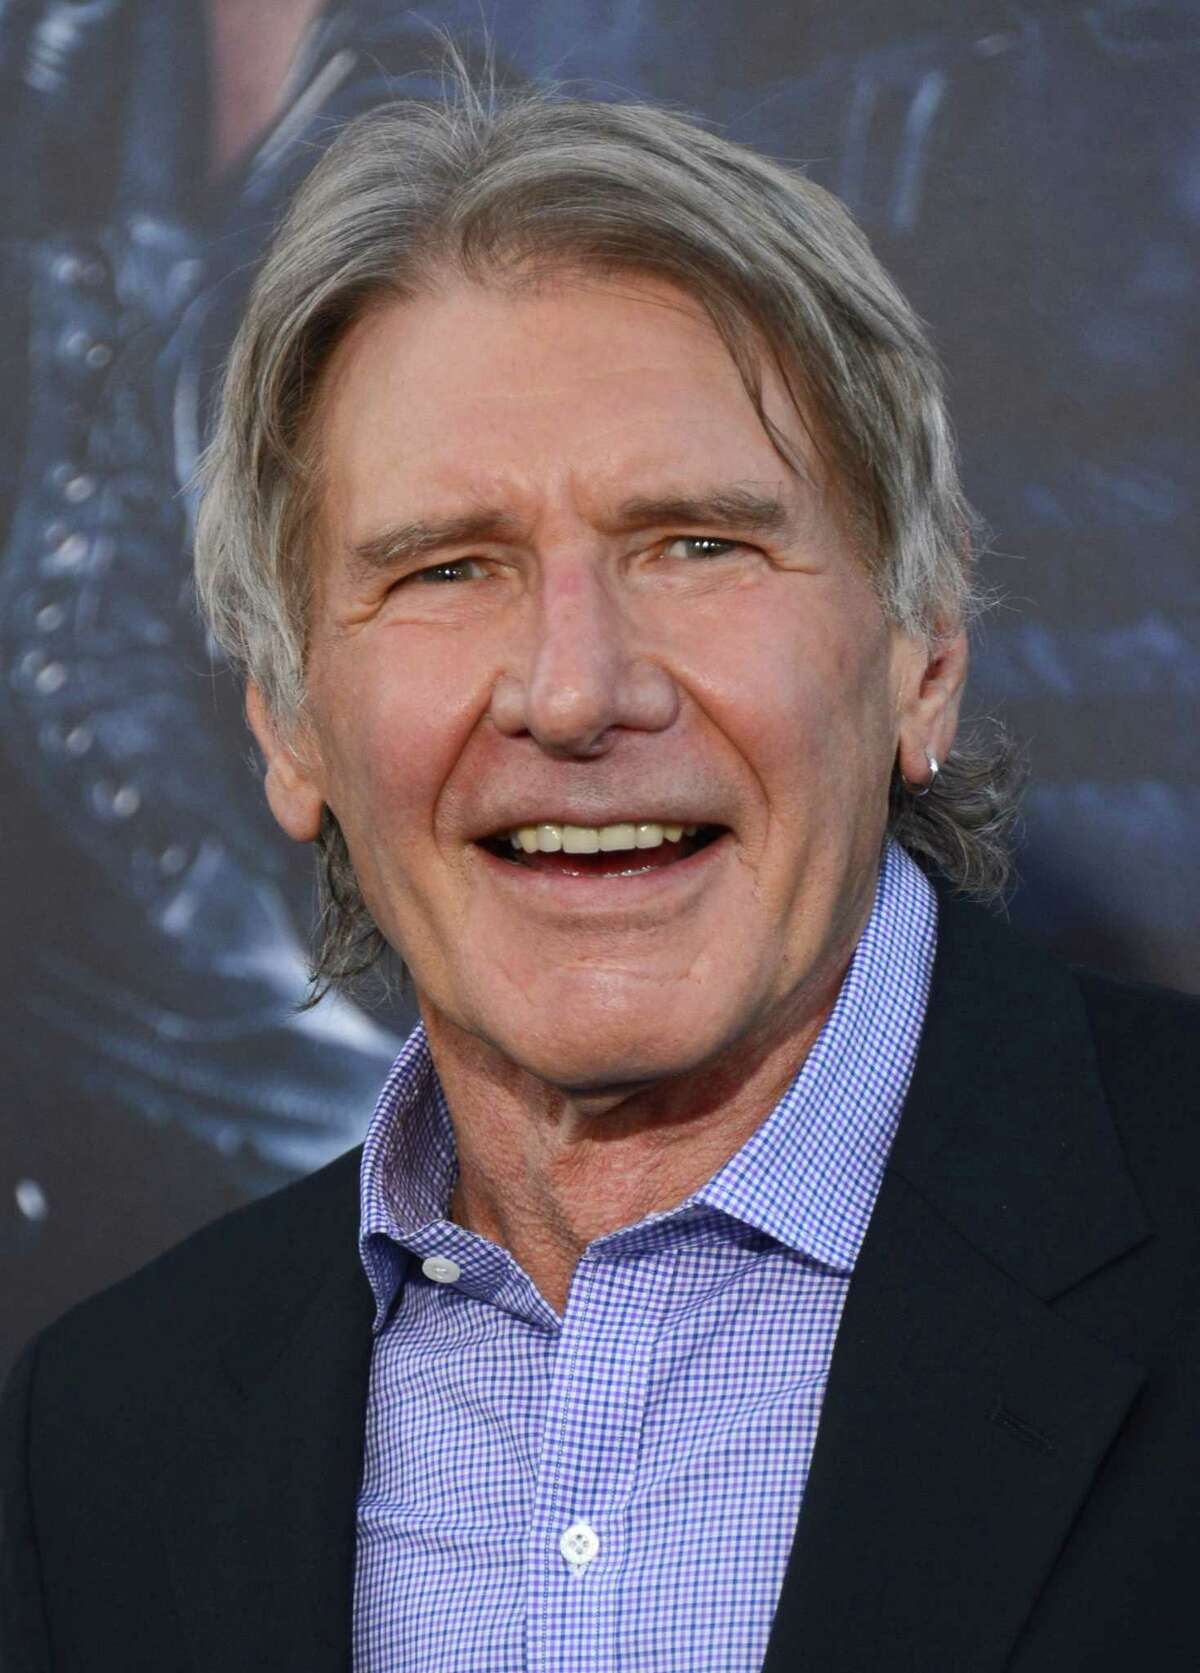 """FILE - In this Monday, Aug. 11, 2014 file photo, Harrison Ford arrives at the premiere of """"The Expendables 3"""" at TCL Chinese Theatre in Los Angeles. An official says Ford crash-landed his vintage airplane at a Los Angeles golf course. He suffered moderate injuries."""